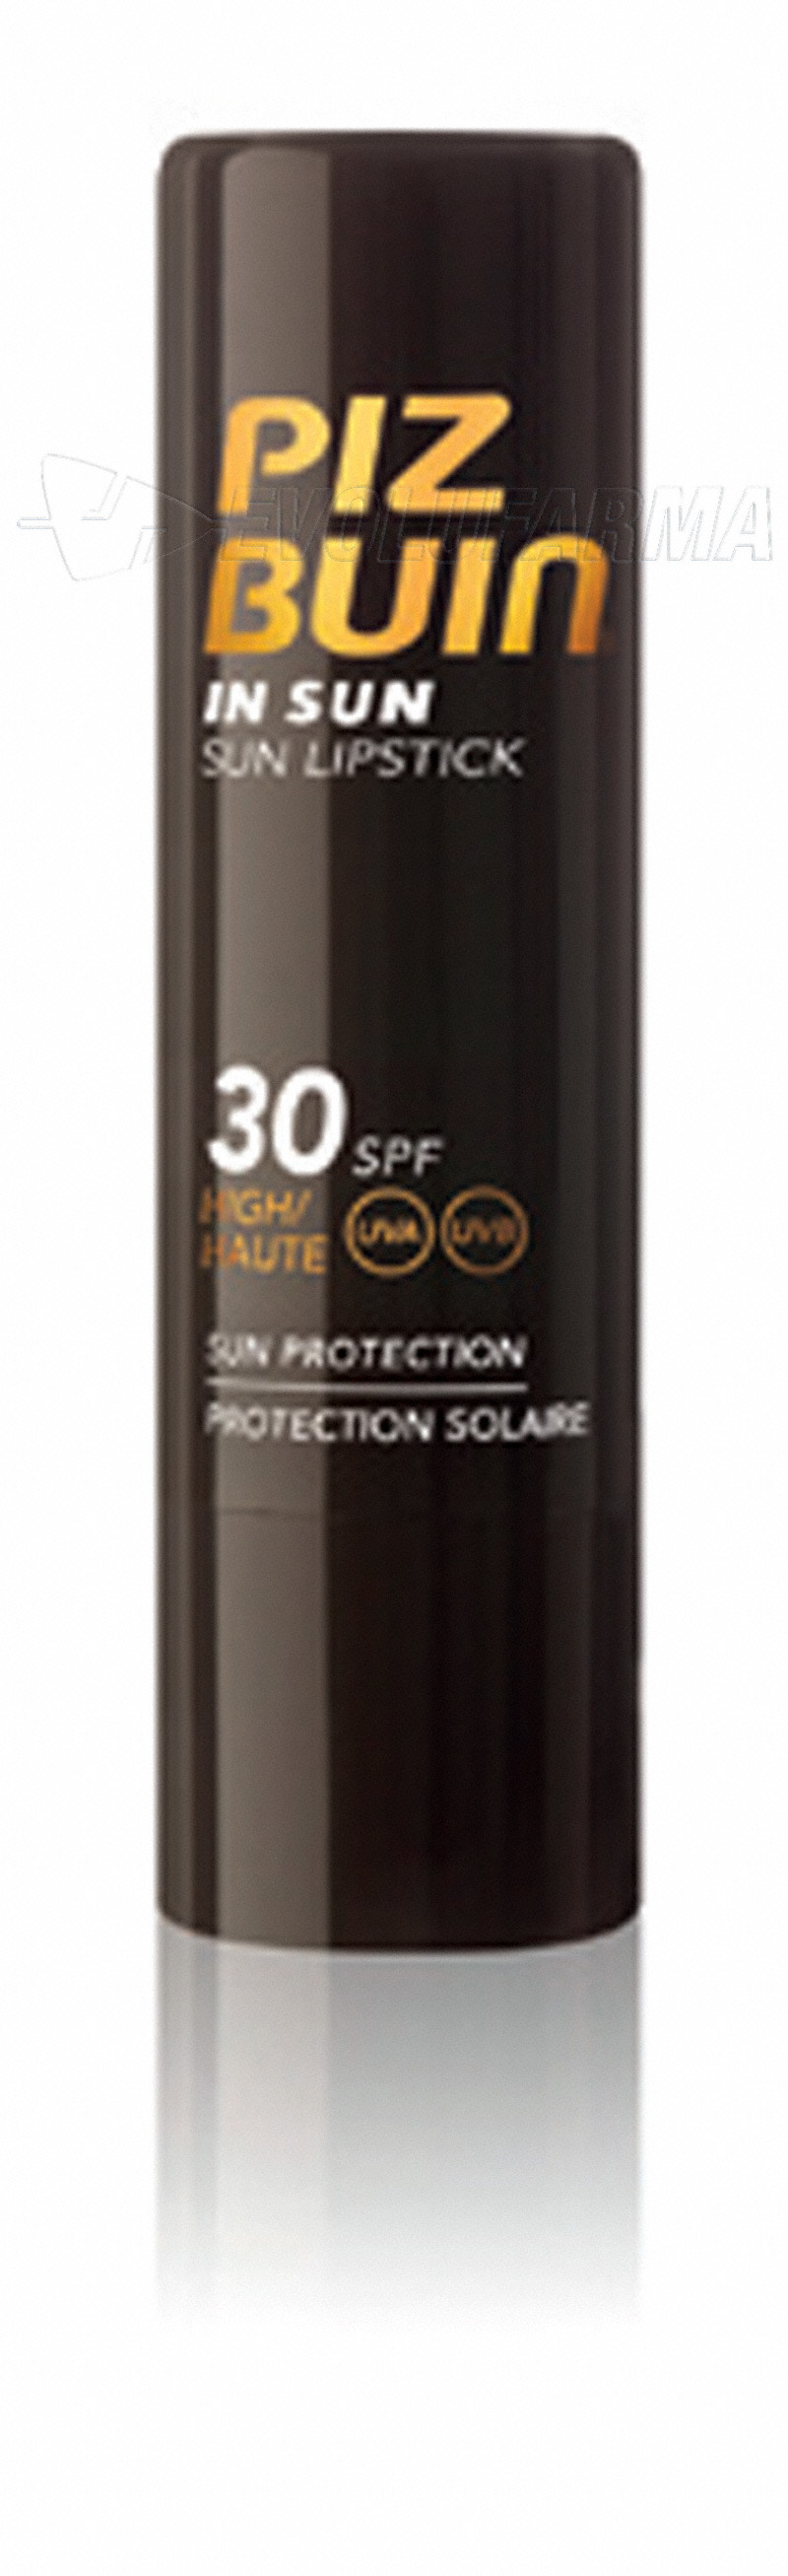 PIZ BUIN IN SUN STICK LABIAL SPF 30. 4.9 g.